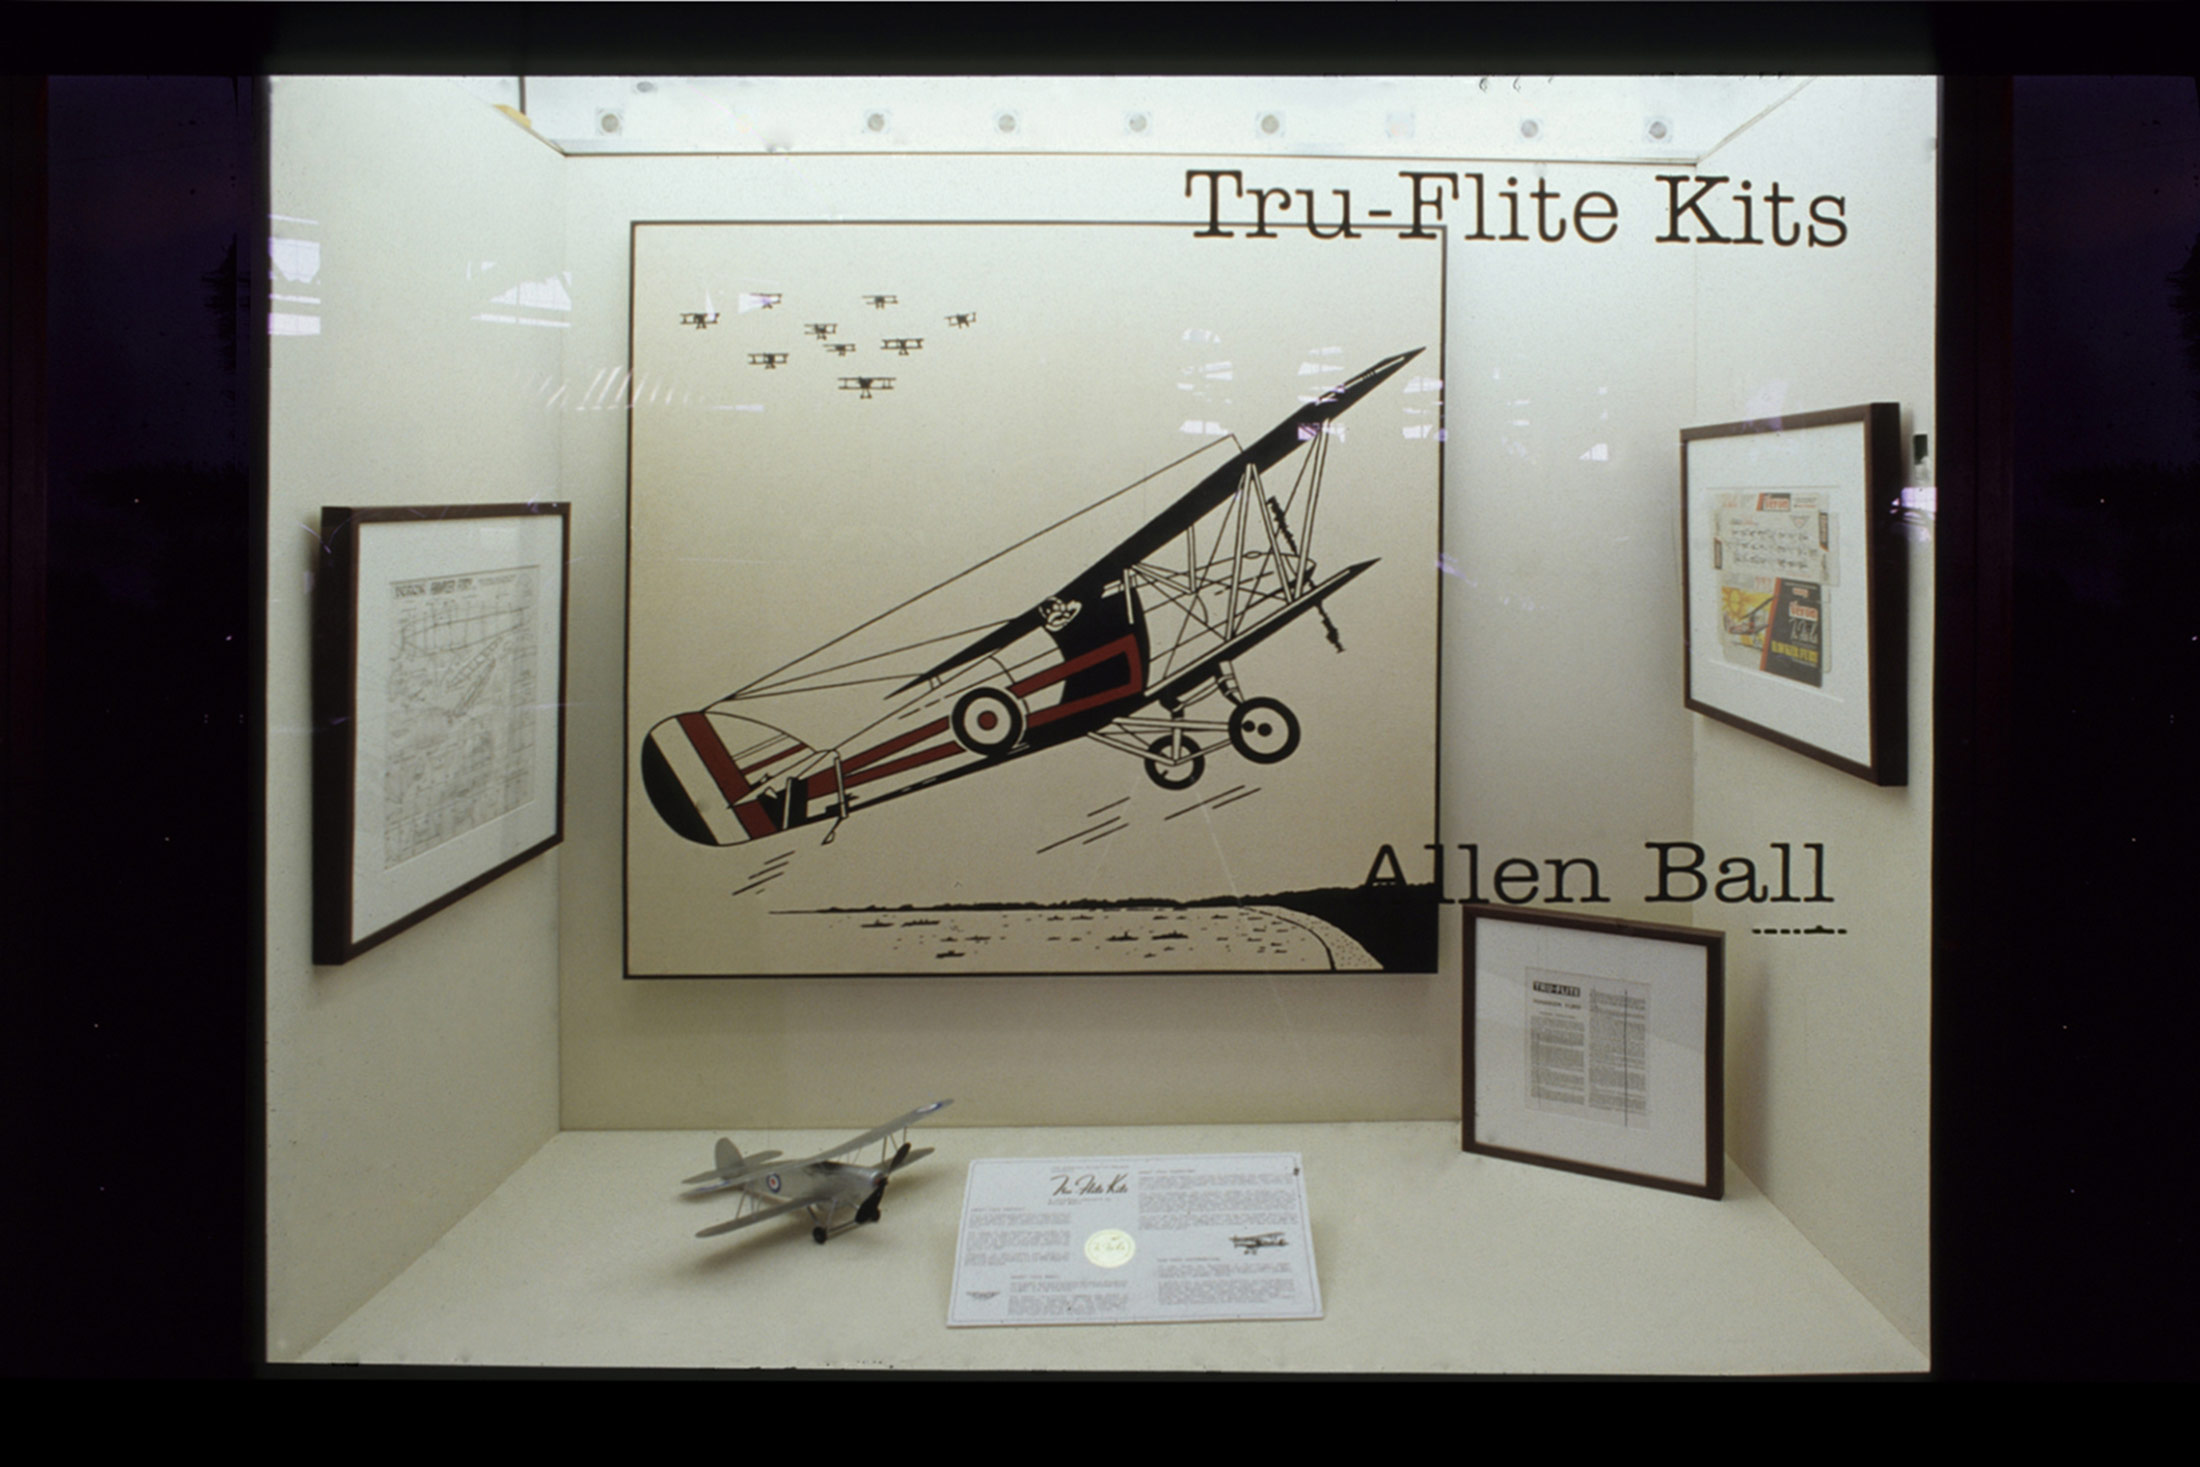 """Installation view of  Tru-Flite Kits,  1997. The Alberta Aviation Museum, Edmonton, Alberta, Canada                96    800x600                 Normal    0                false    false    false       EN-US    JA    X-NONE                                                                                                                                                                                                                                                                                                                                                                                                                                                                                                                                              /* Style Definitions */ table.MsoNormalTable {mso-style-name:""""Table Normal""""; mso-tstyle-rowband-size:0; mso-tstyle-colband-size:0; mso-style-noshow:yes; mso-style-priority:99; mso-style-parent:""""""""; mso-padding-alt:0in 5.4pt 0in 5.4pt; mso-para-margin:0in; mso-para-margin-bottom:.0001pt; mso-pagination:widow-orphan; font-size:10.0pt; font-family:""""Times New Roman"""";}"""